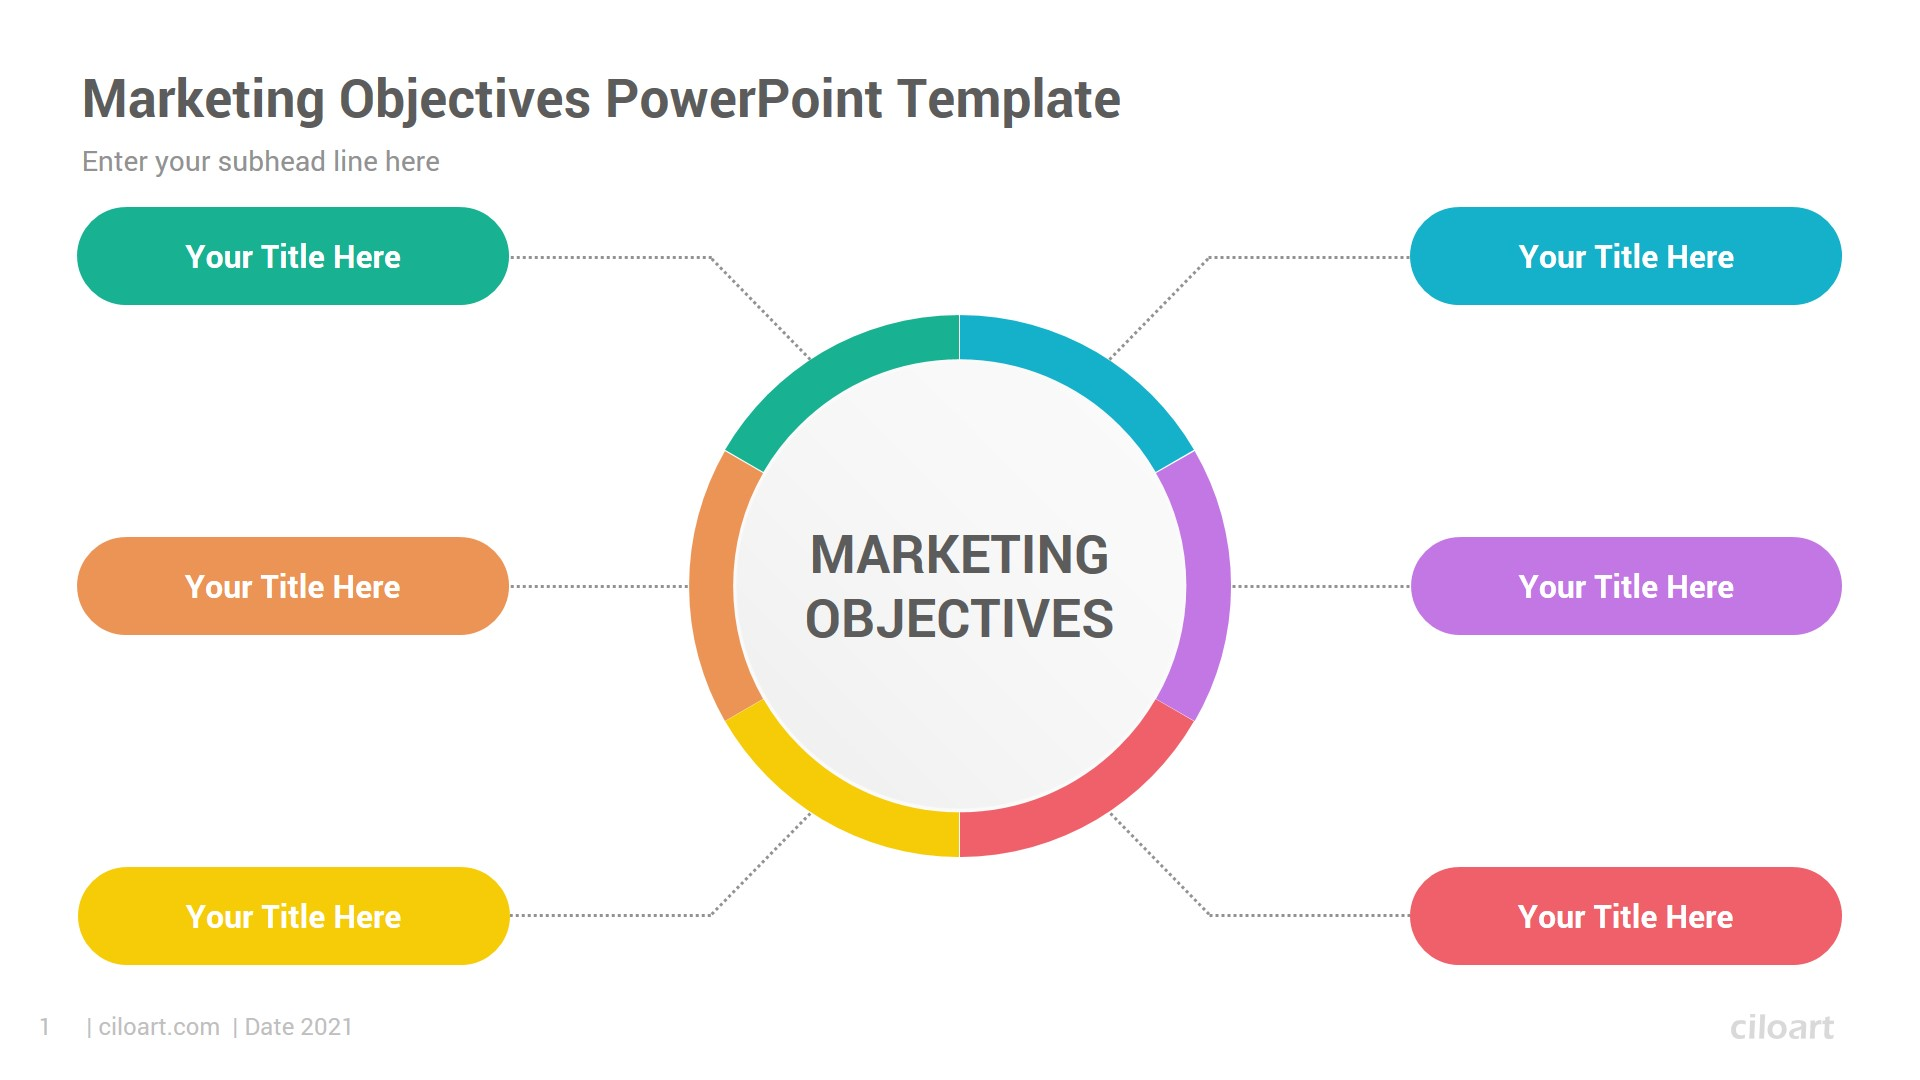 Marketing Objectives PowerPoint Template